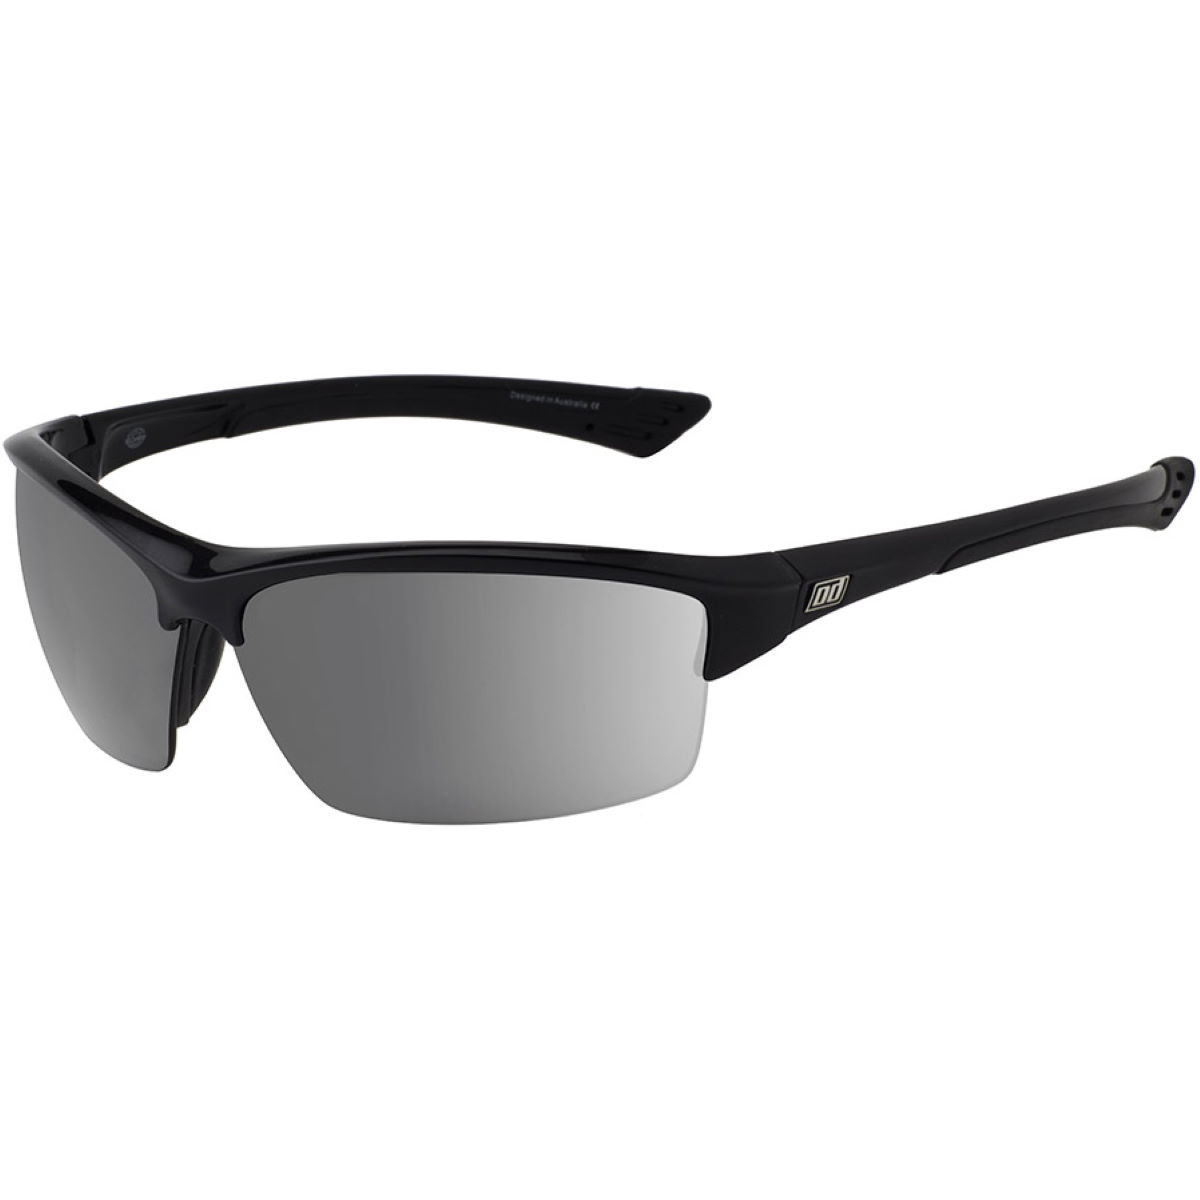 Dirty Dog Sly Polarised Sunglasses - Gafas de sol